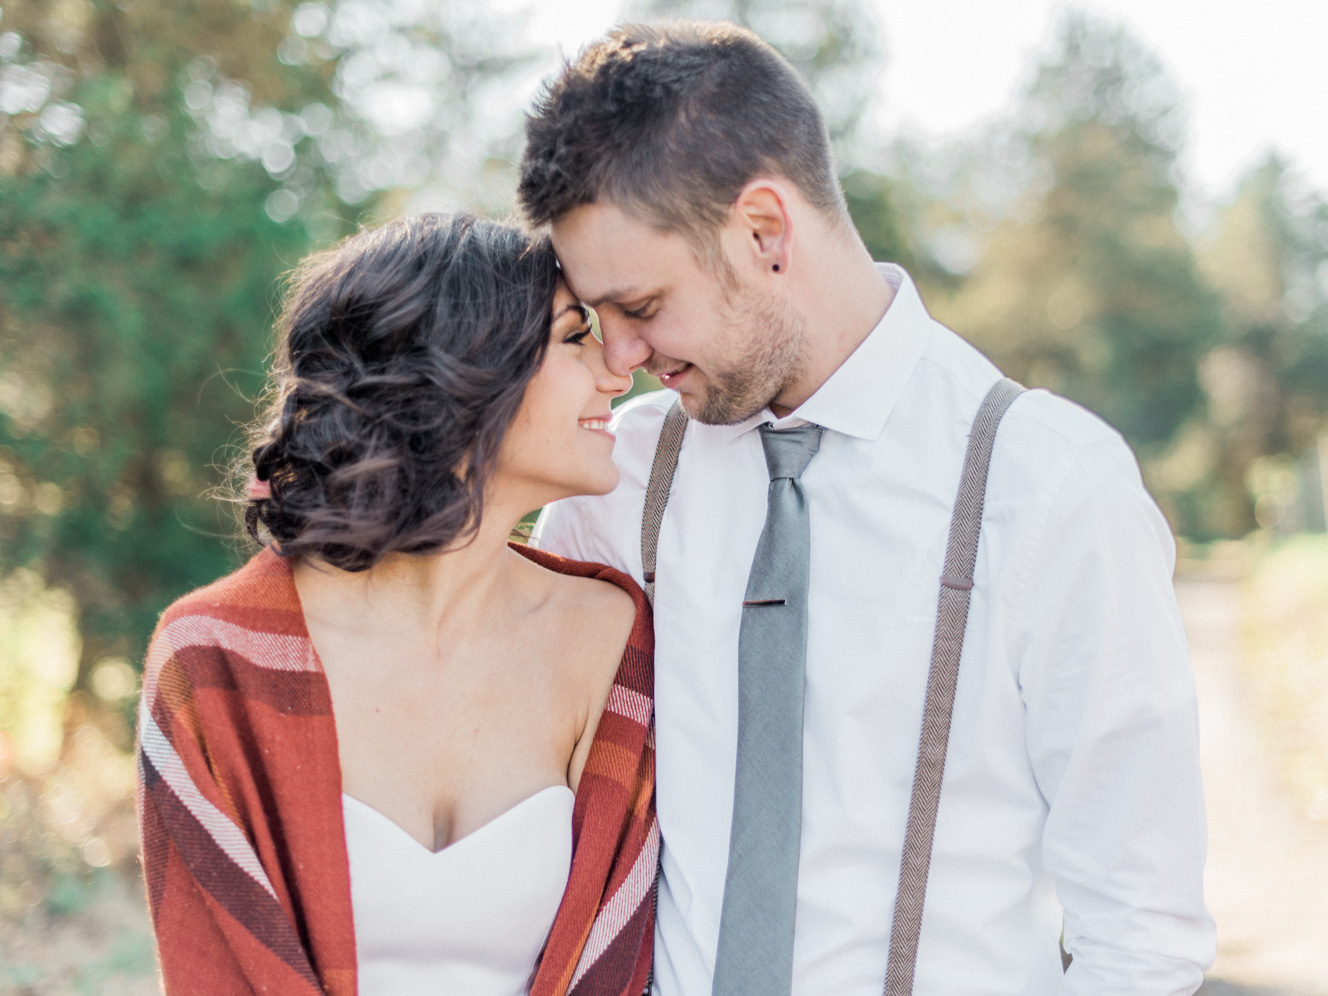 Bride and Groom Photos with Blanket Scarf | Bella Wedding Dress by Sarah Janks | Rustic Winter Wedding | Lynchburg, Virginia Film Photographer | kelseyandnate.com